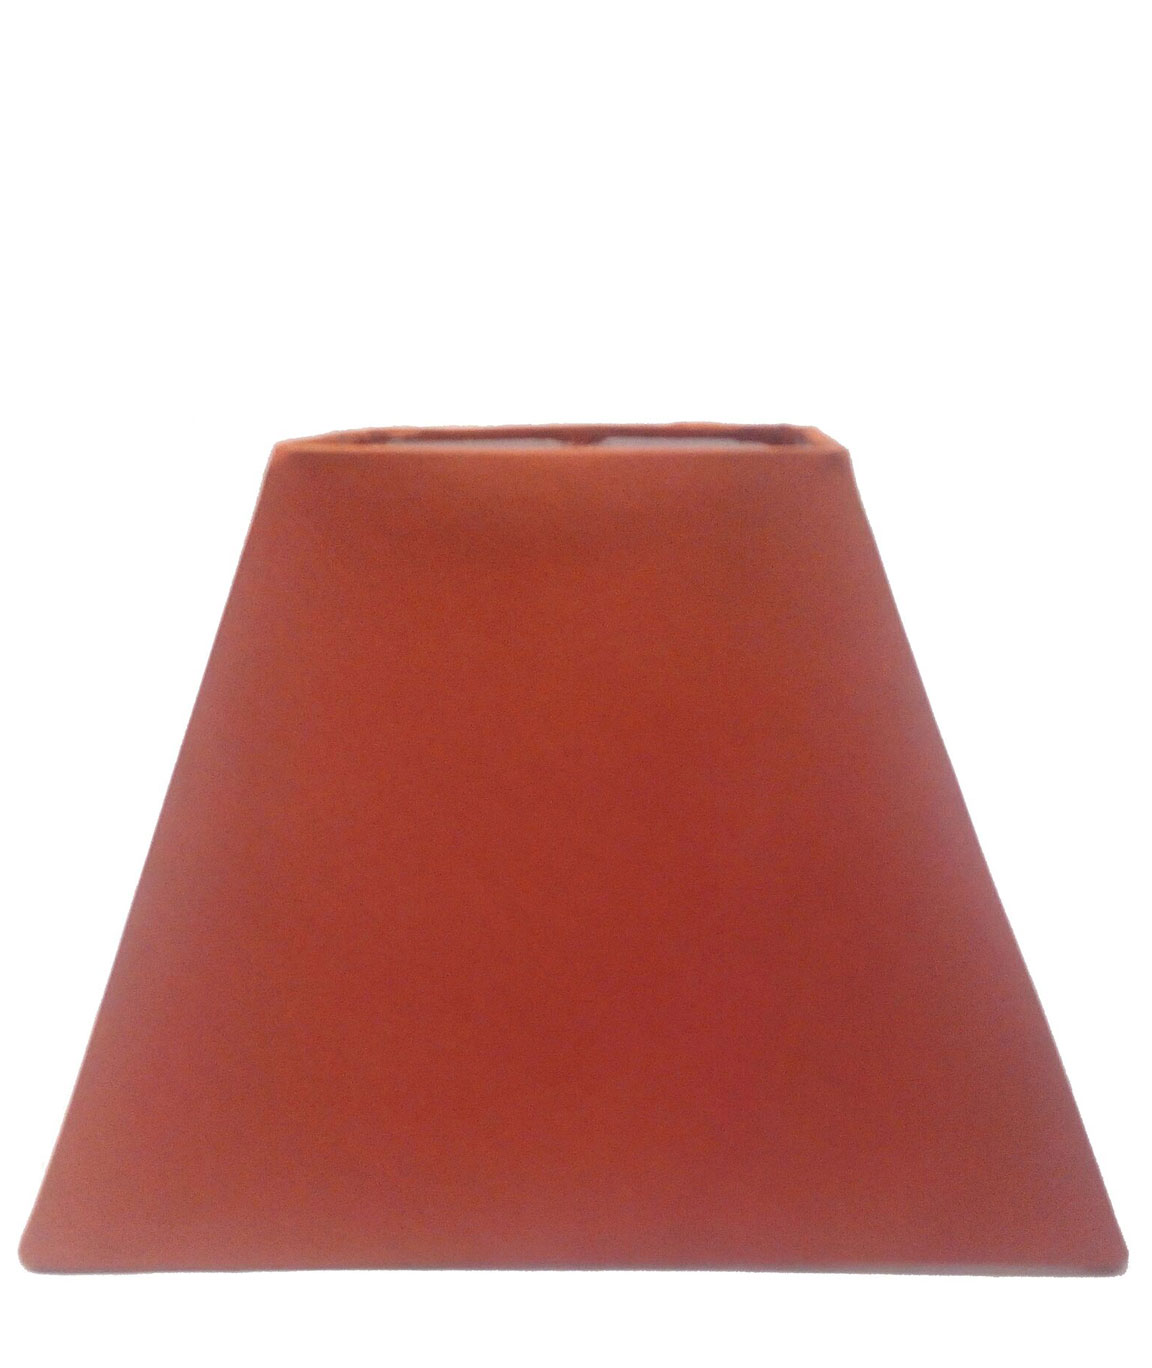 RDC 8 Inches Square Plain Rust Lamp Shade for Table Lamp